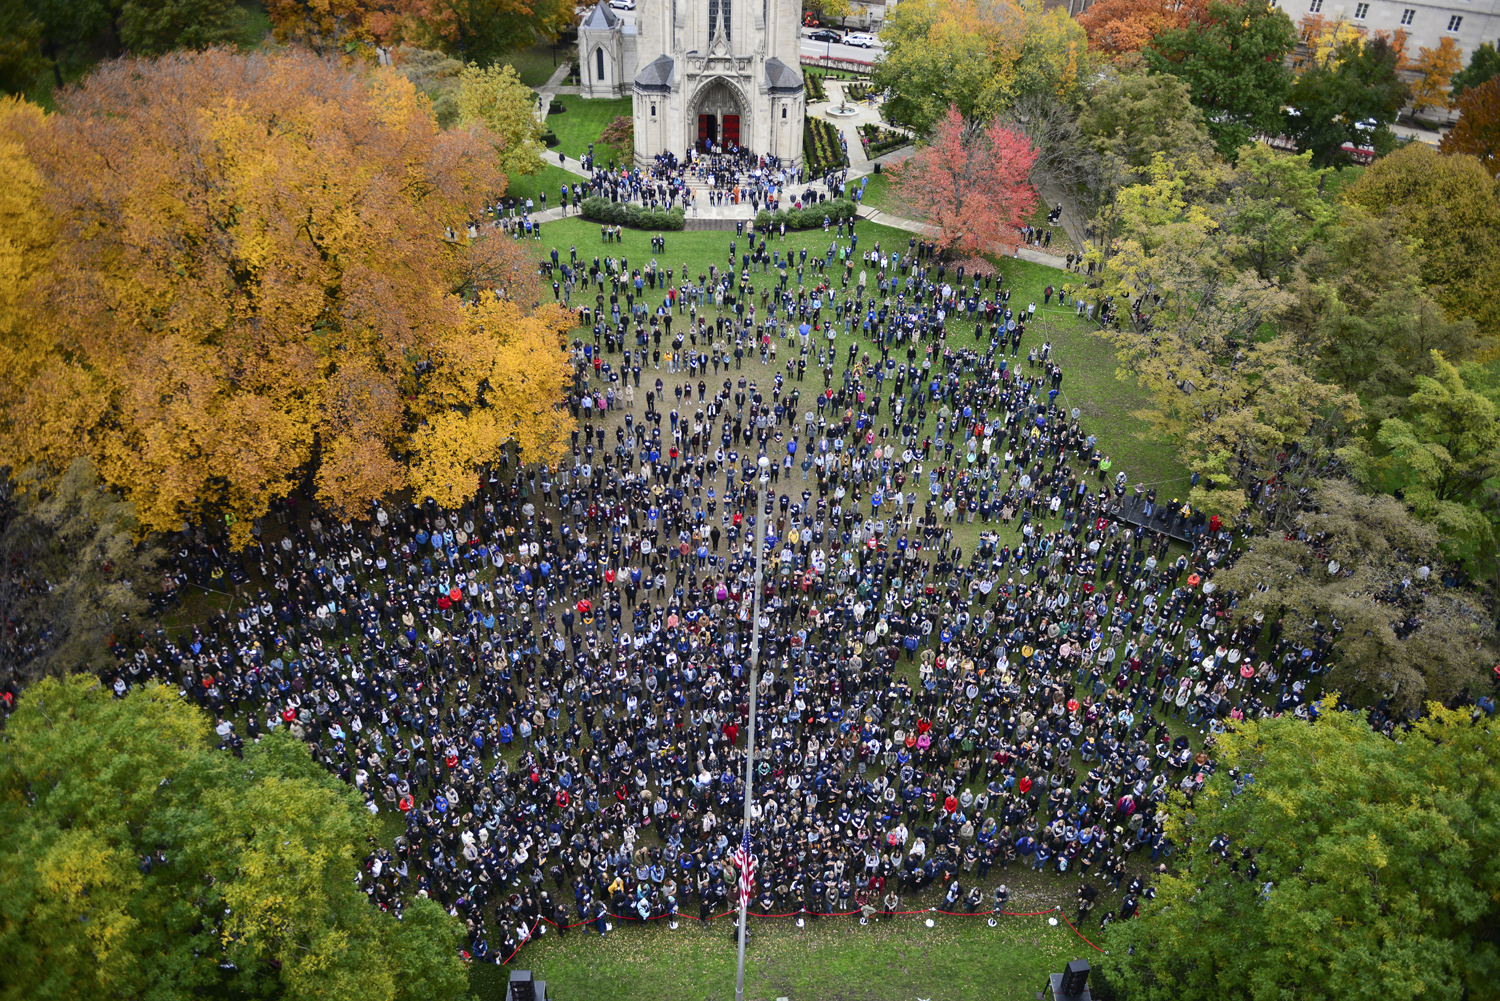 Close to 3,000 people attended the Stronger than Hate vigil on the Cathedral of Learning Lawn Monday afternoon.